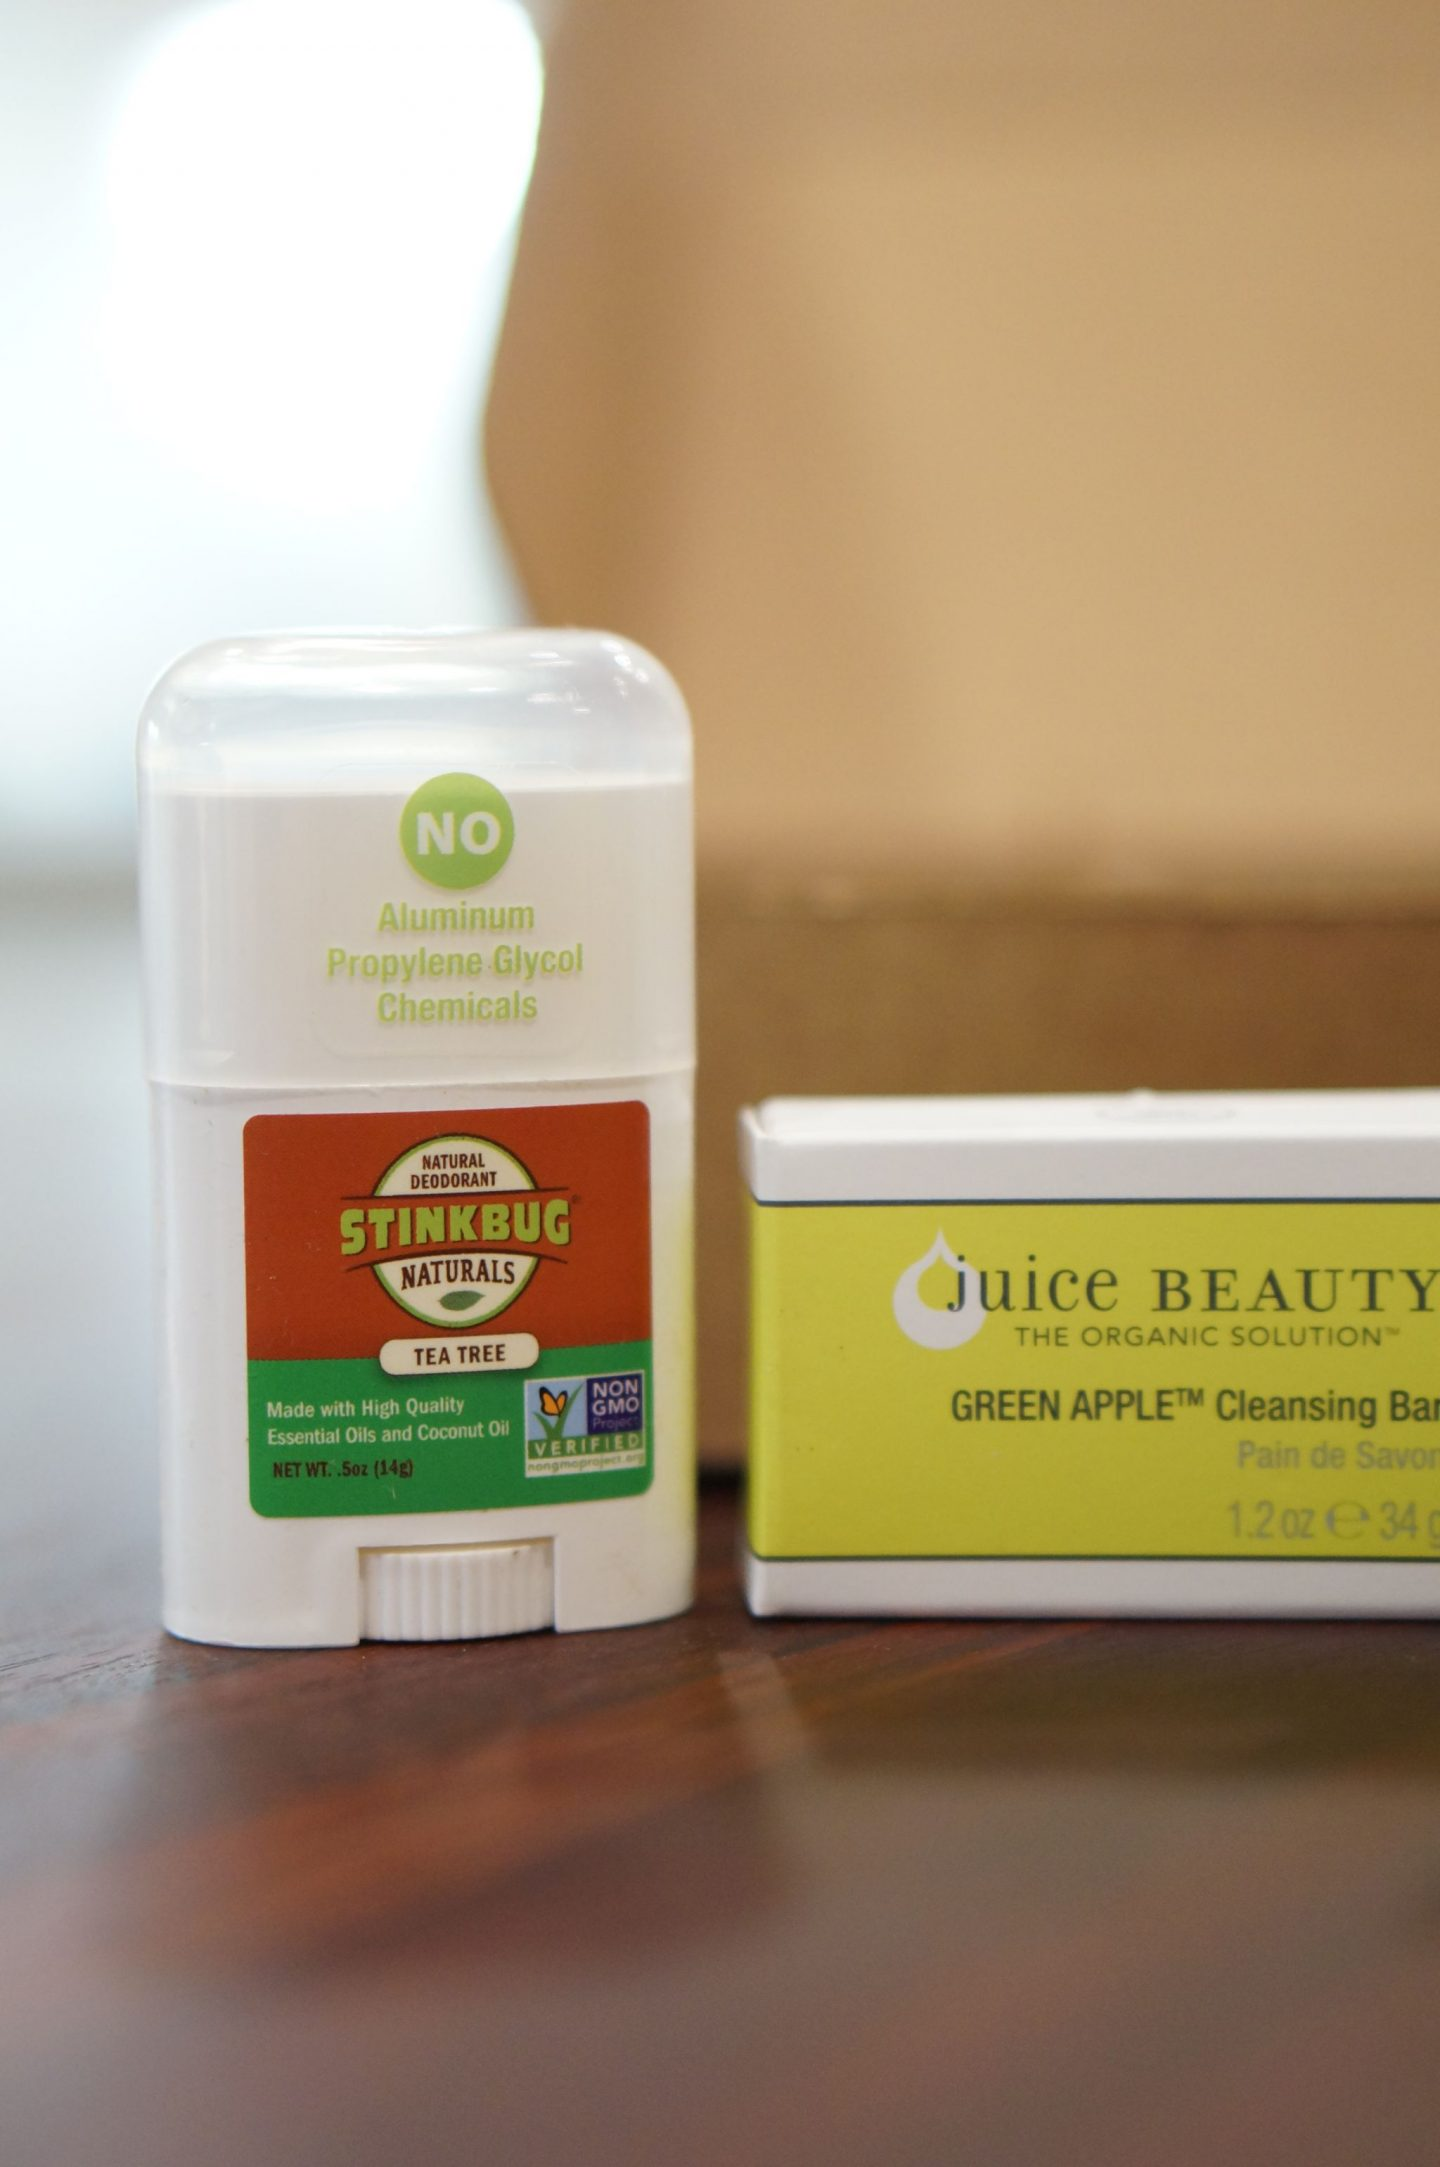 Popular North Carolina style blogger Rebecca Lately shares her Goodbeing natural beauty box for October. Check out what she got and what she thinks!